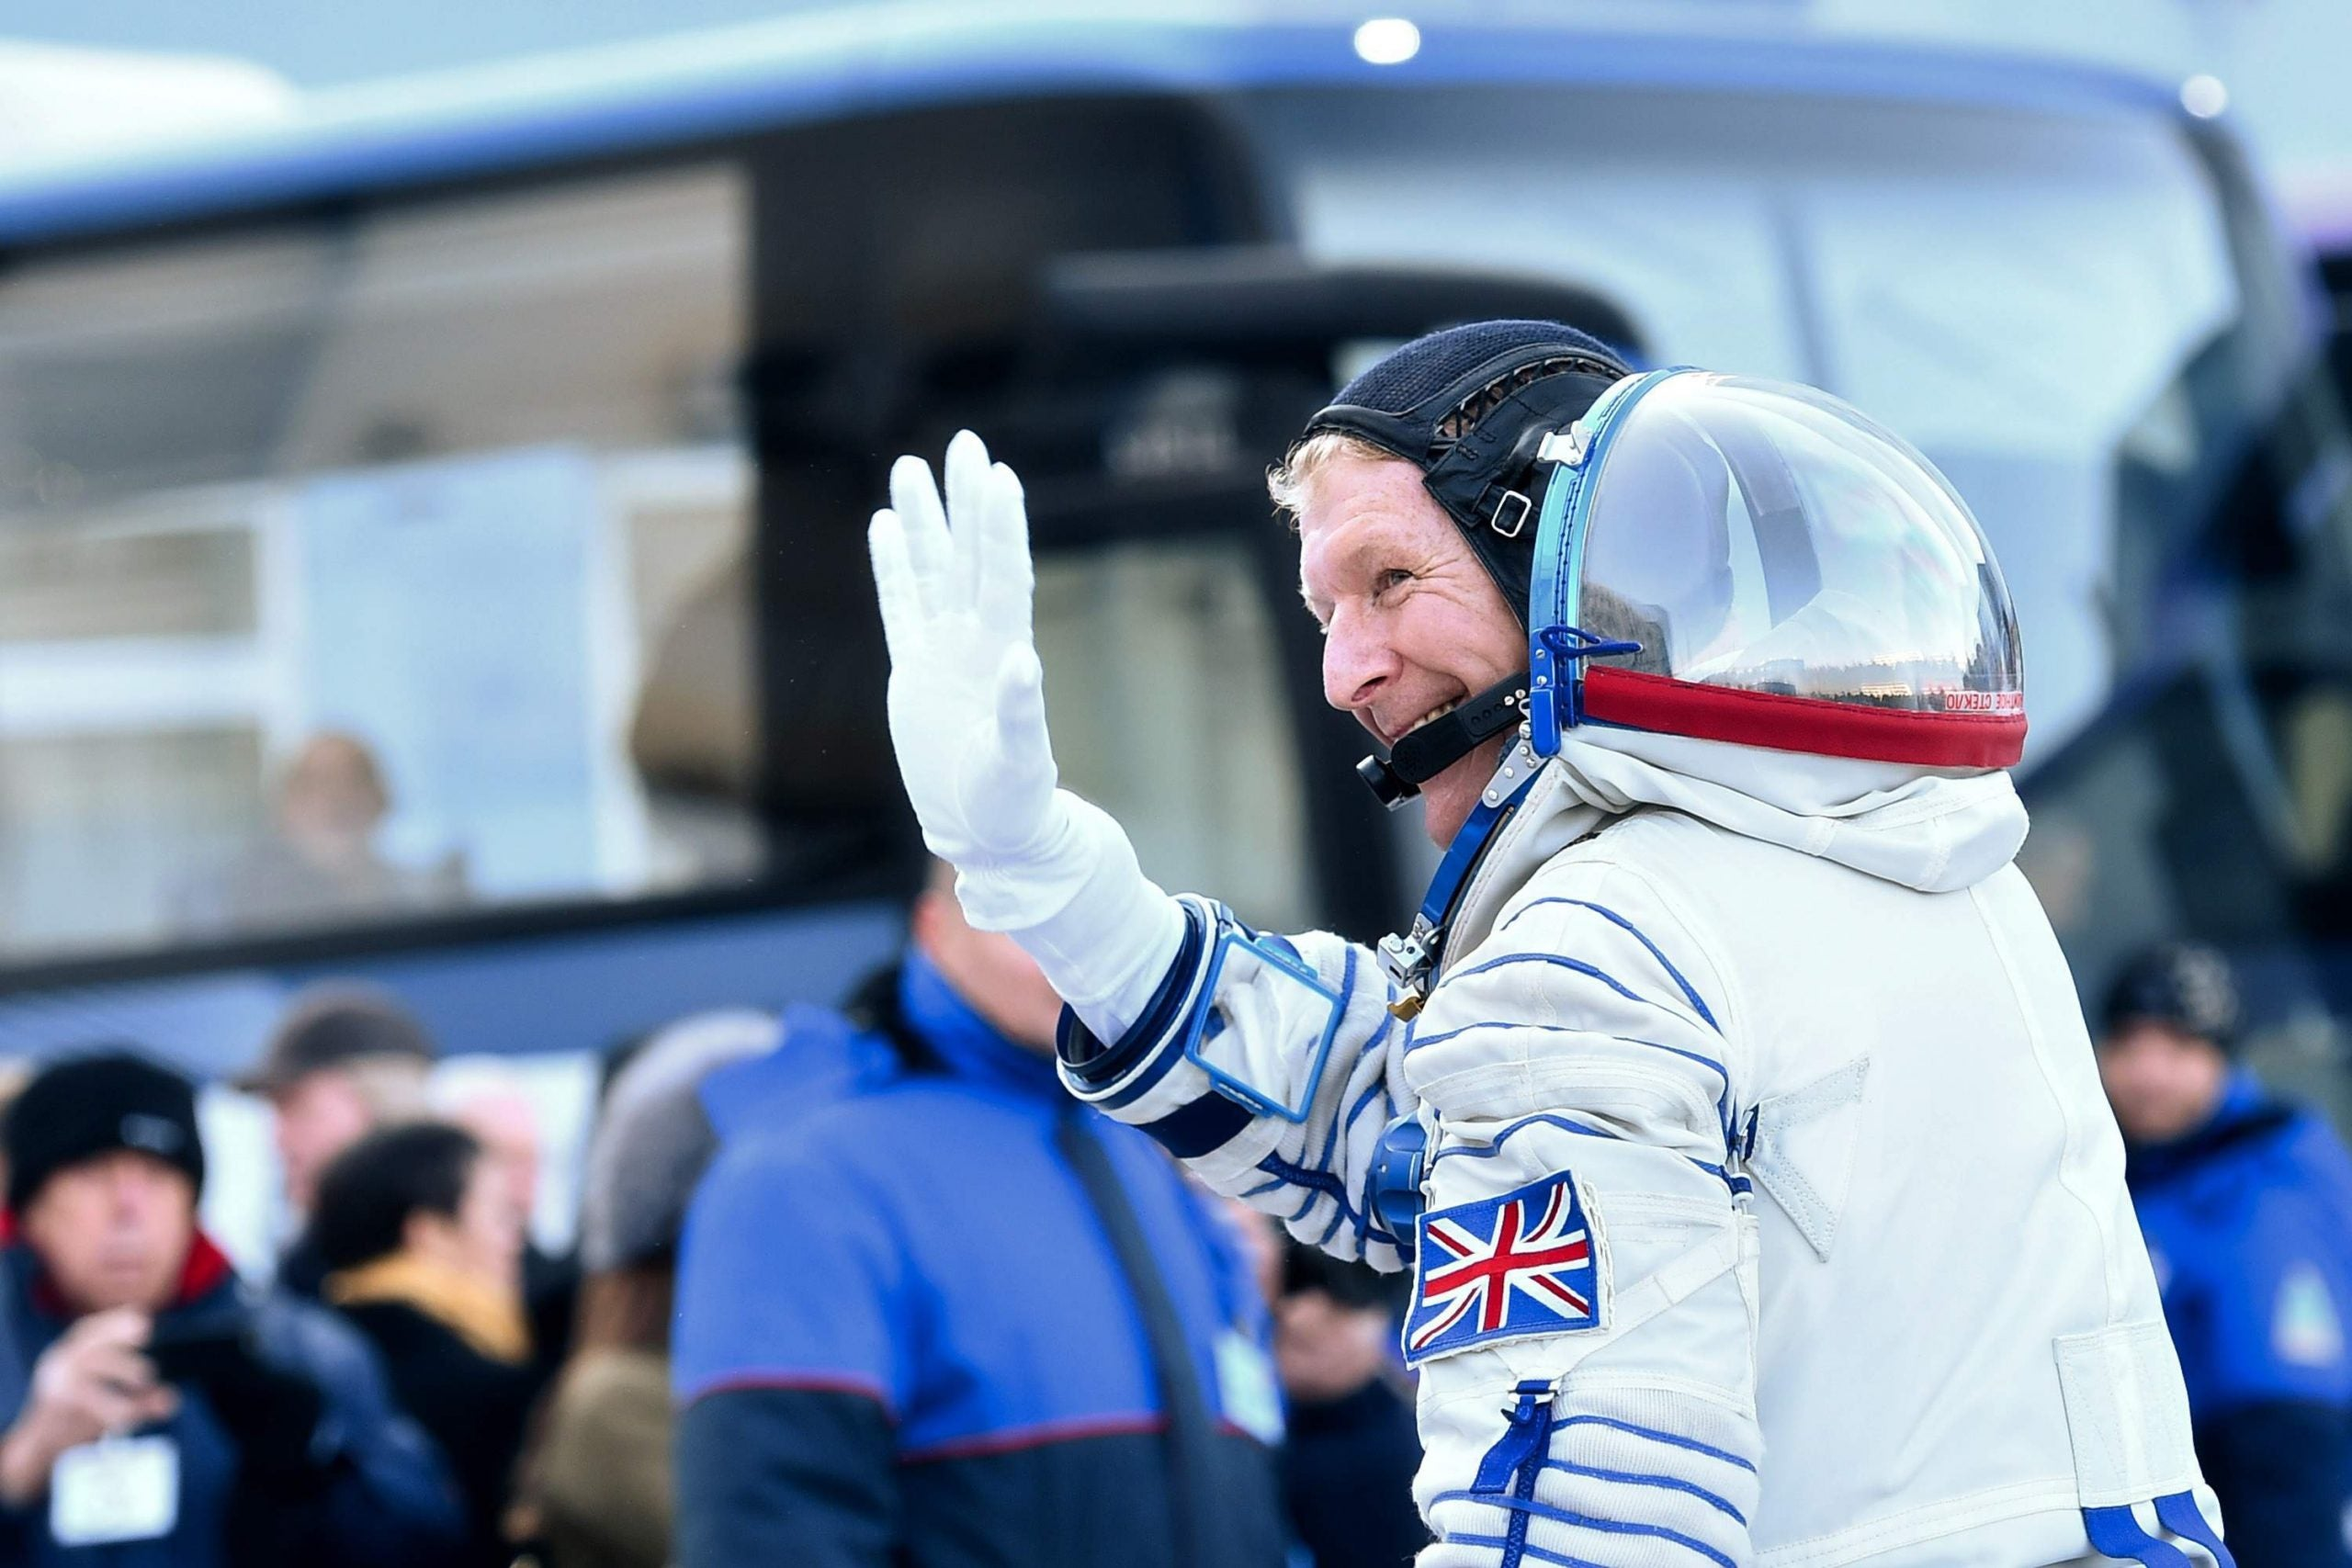 Tim Peake launches Britain and Europe into a new age of discovery